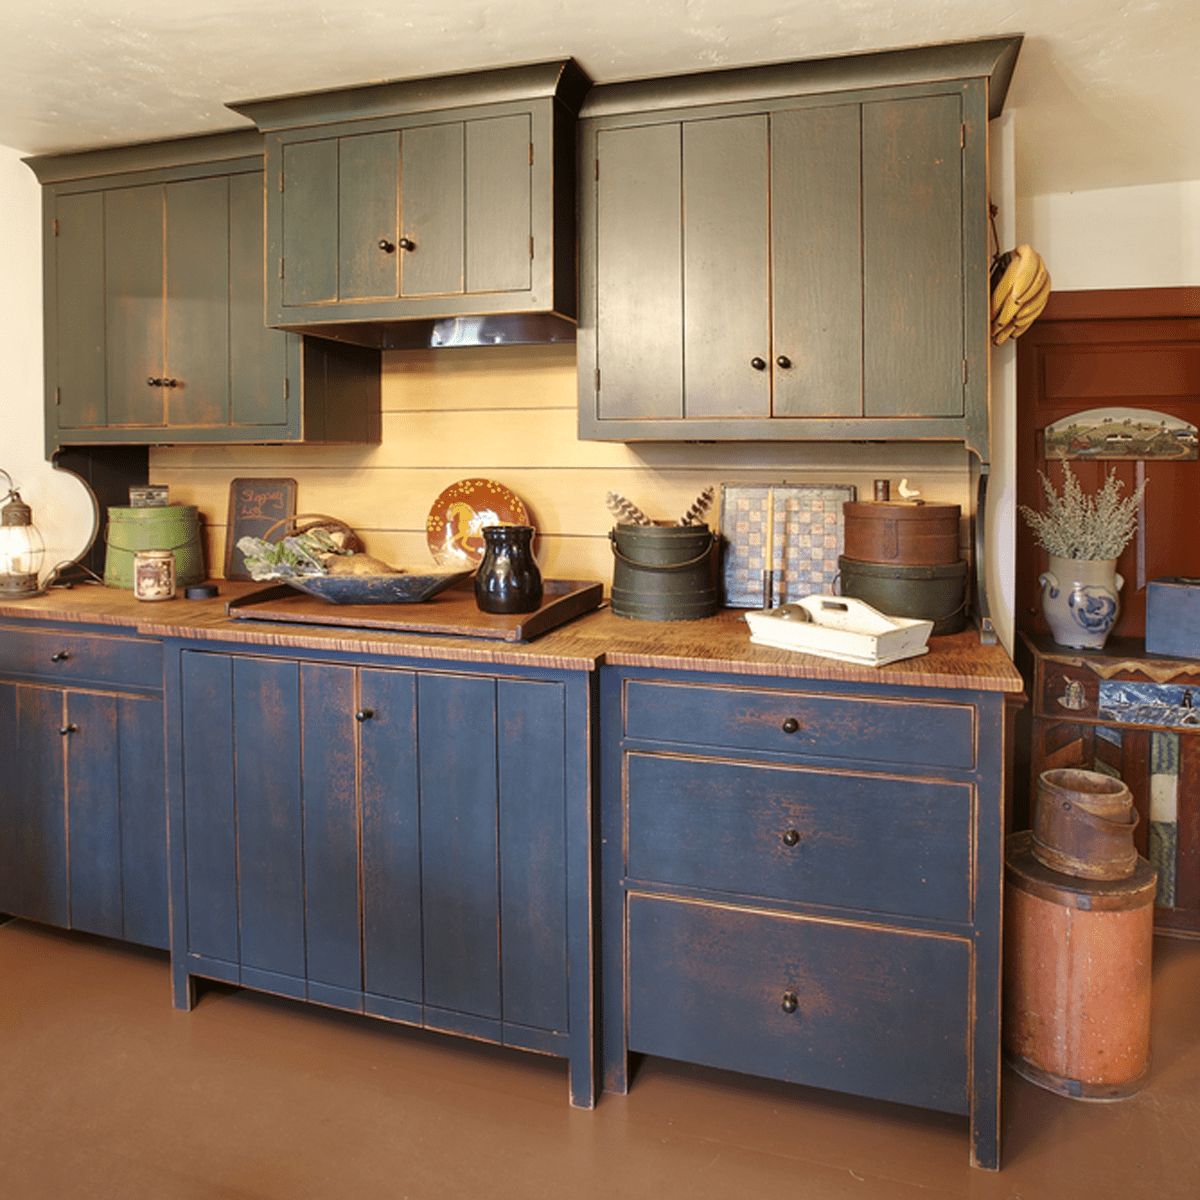 Kitchen Cupboard Colours 2018 10 Kitchen Cabinetry Trends The Latest Kitchen Trends To Embrace